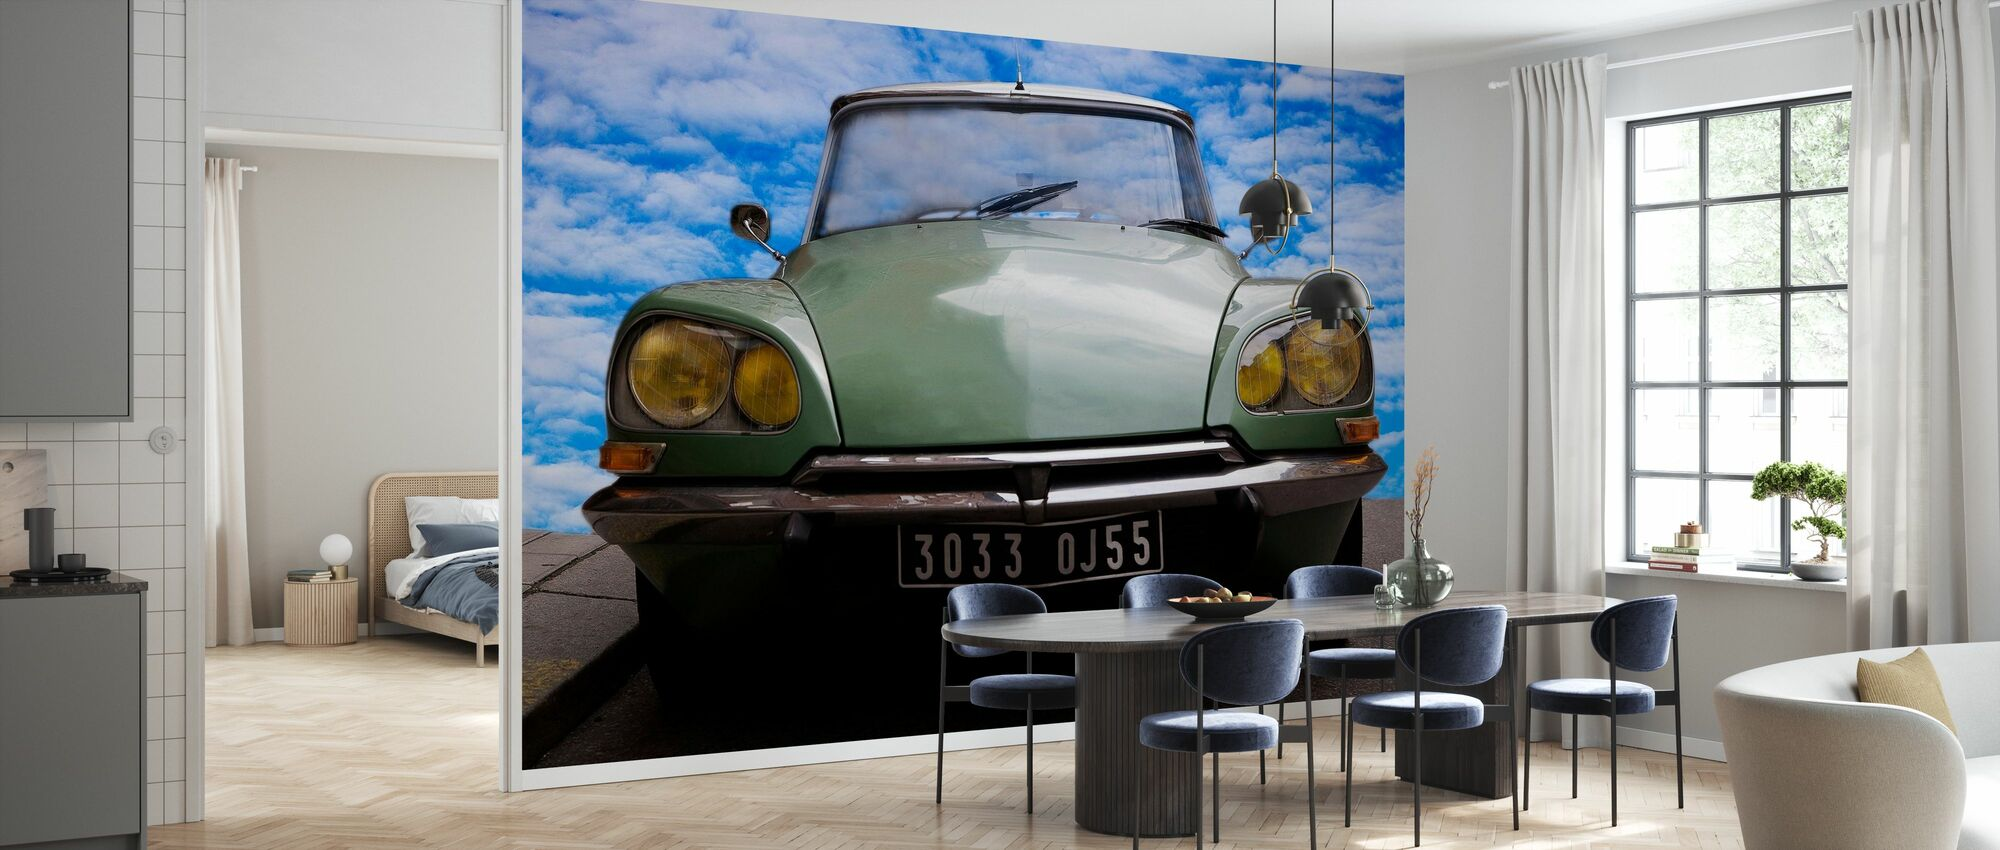 Citroen DS - Wallpaper - Kitchen